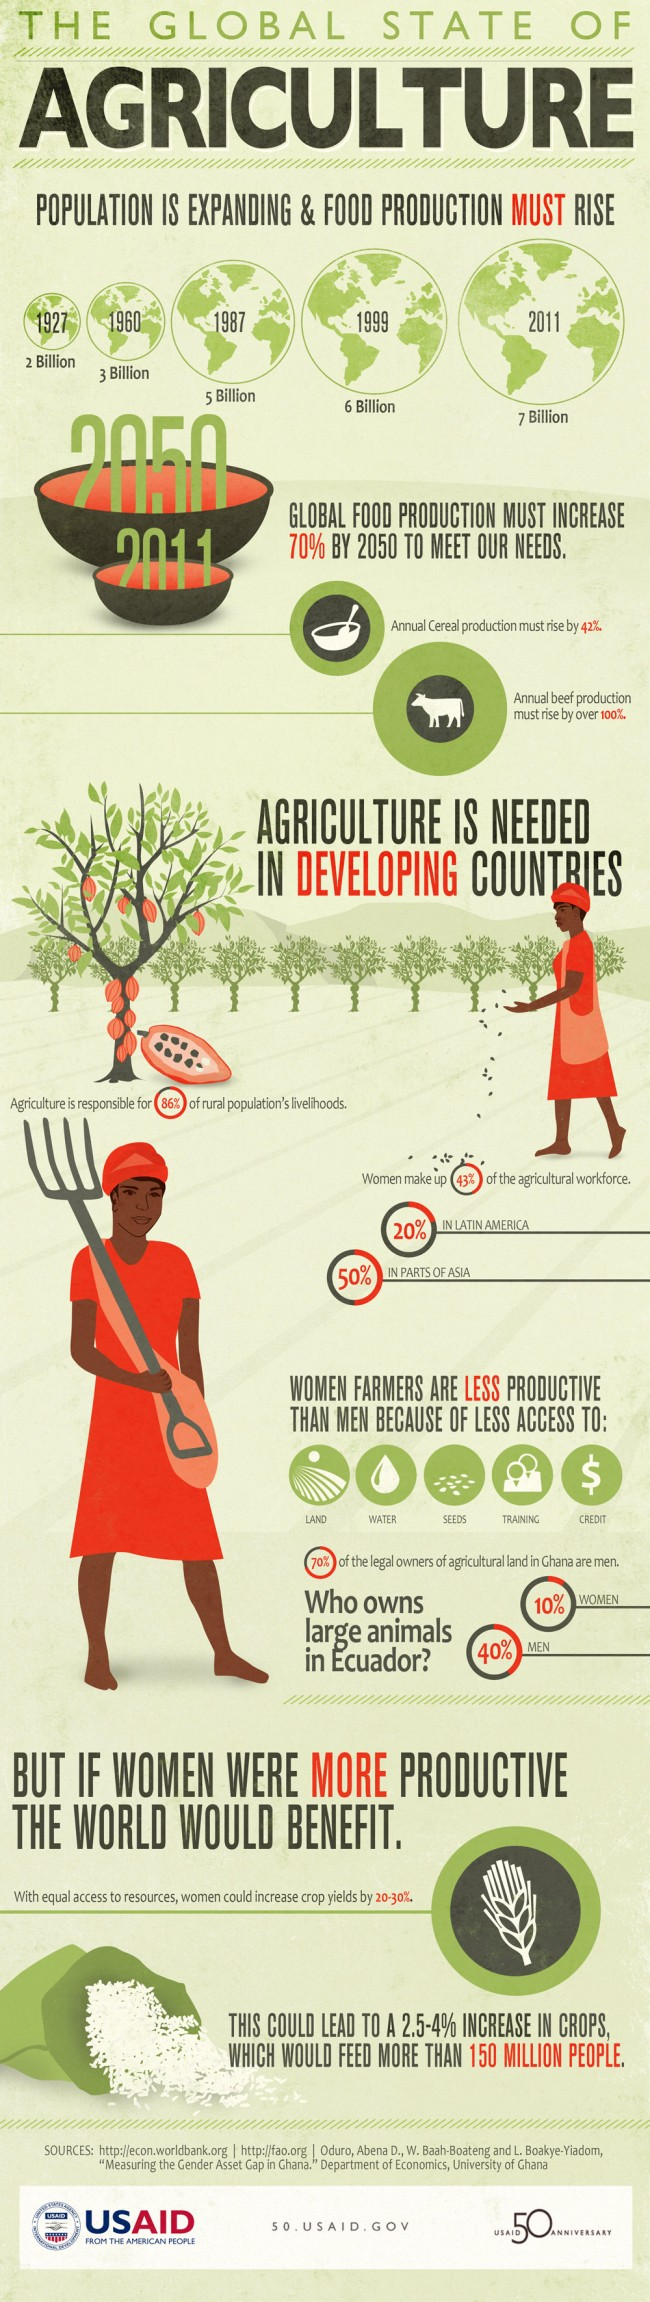 Global food production must increase 70% till 2050 to meet our needs (source: http://50.usaid.gov)